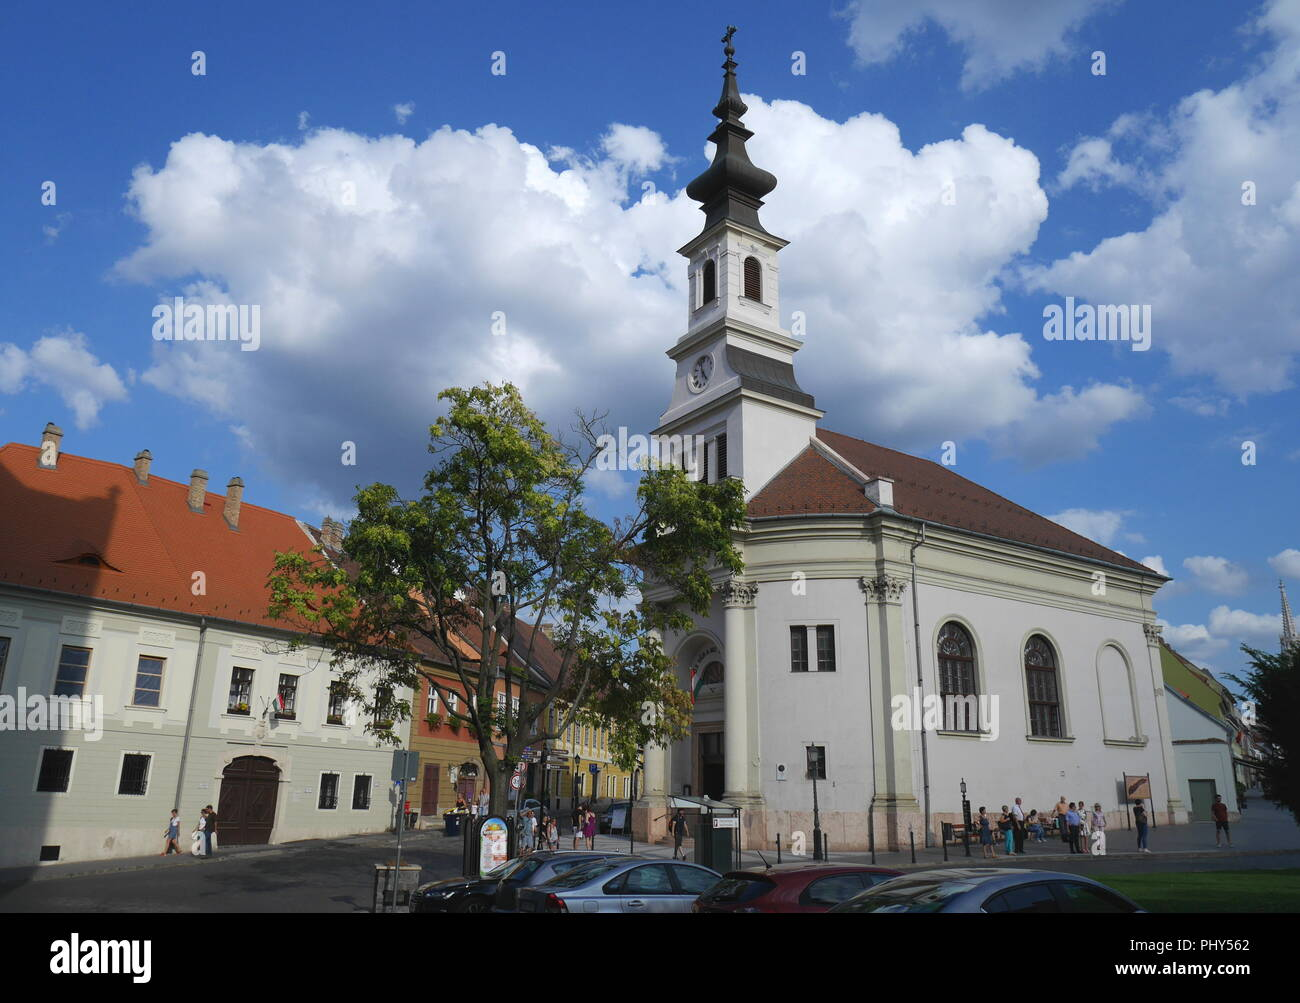 The Evangelical Church in Bécsi Kapu ter, Vienna Gate Square, Castle District, Budapest, Hungary Stock Photo